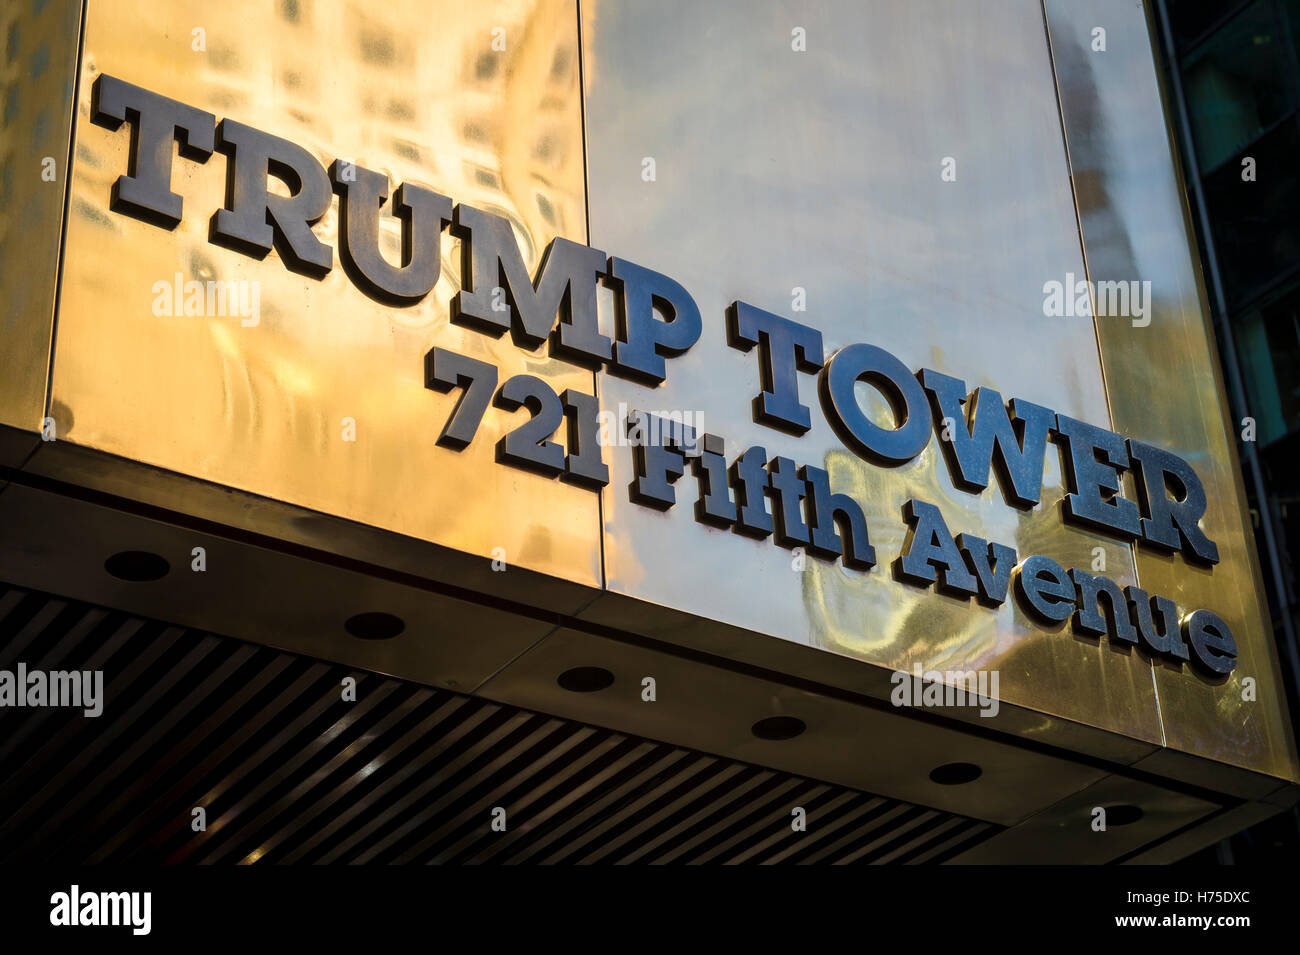 NEW YORK CITY - SEPTEMBER 3, 2016: Polished brass sign for Trump Tower shines on Fifth Avenue in Midtown Manhattan. - Stock Image